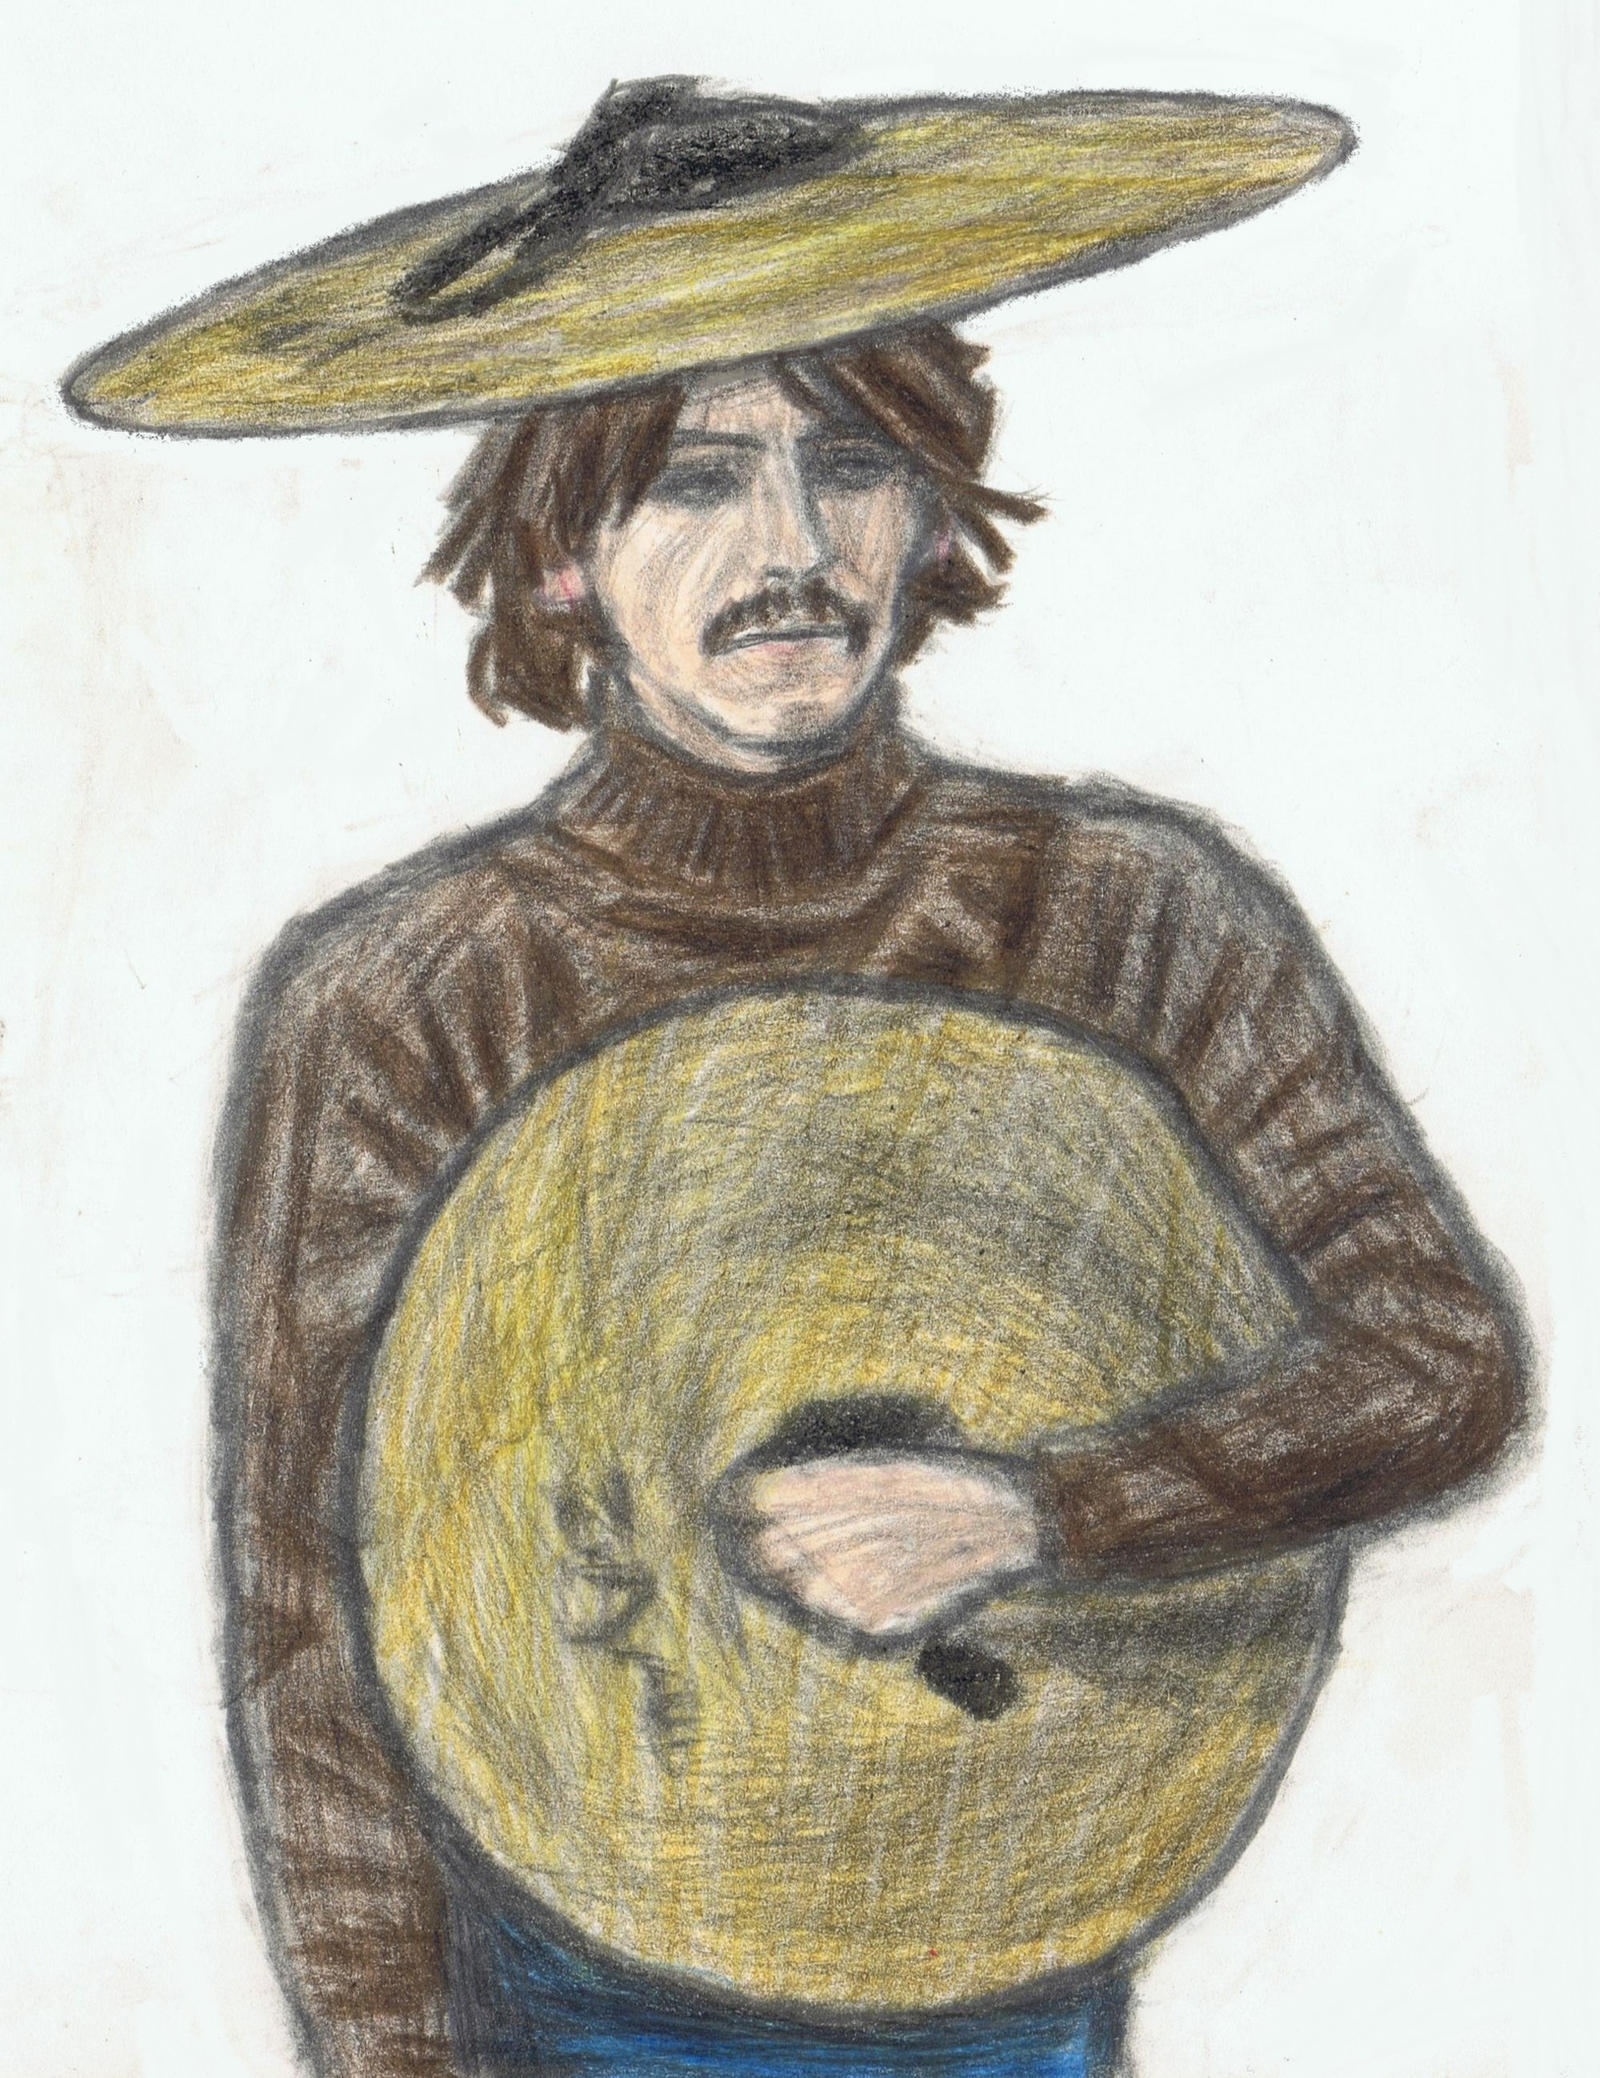 A cymbal hat on George Harrison by gagambo